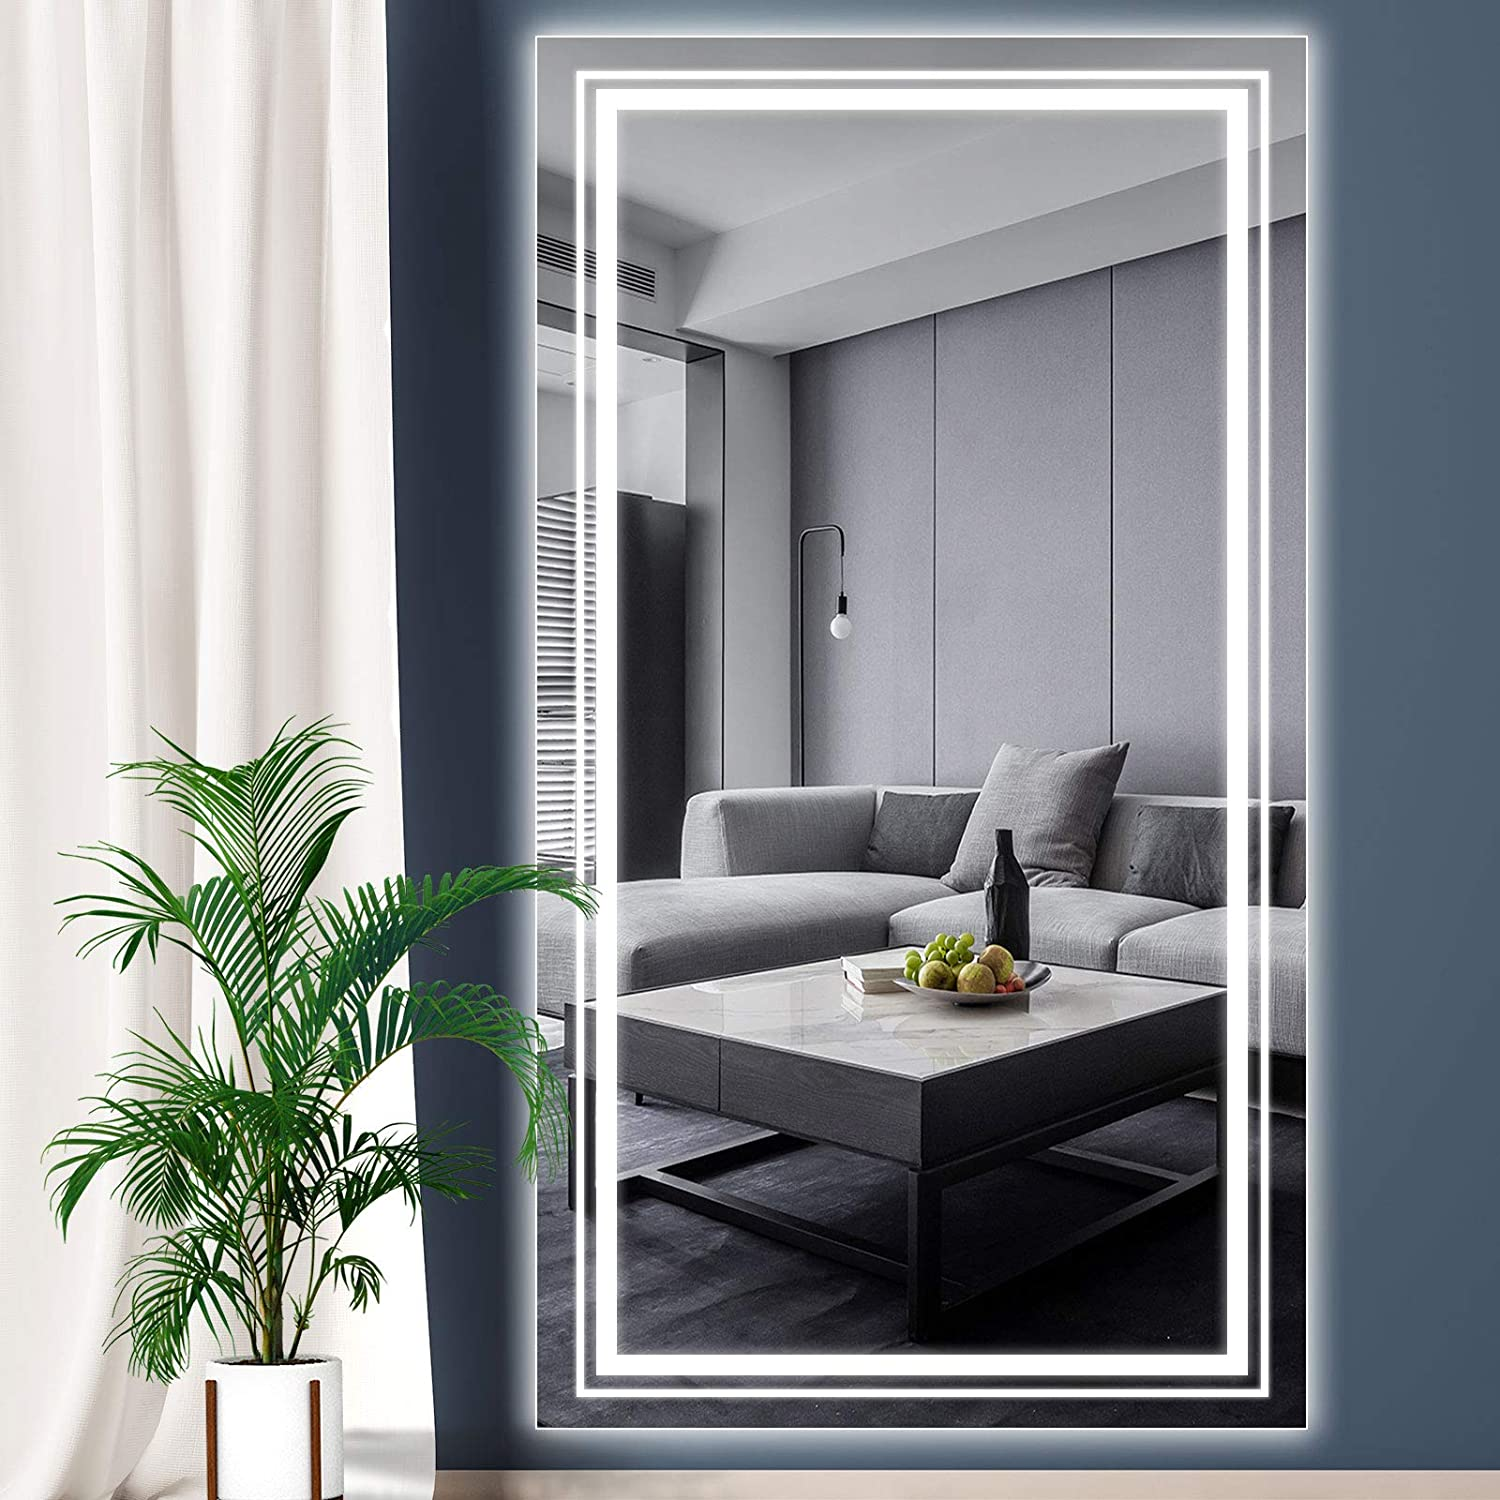 Wihtu Led Full Length Mirror Bedroom Body Mirror With Lights 59 31 Inch Long Ebay